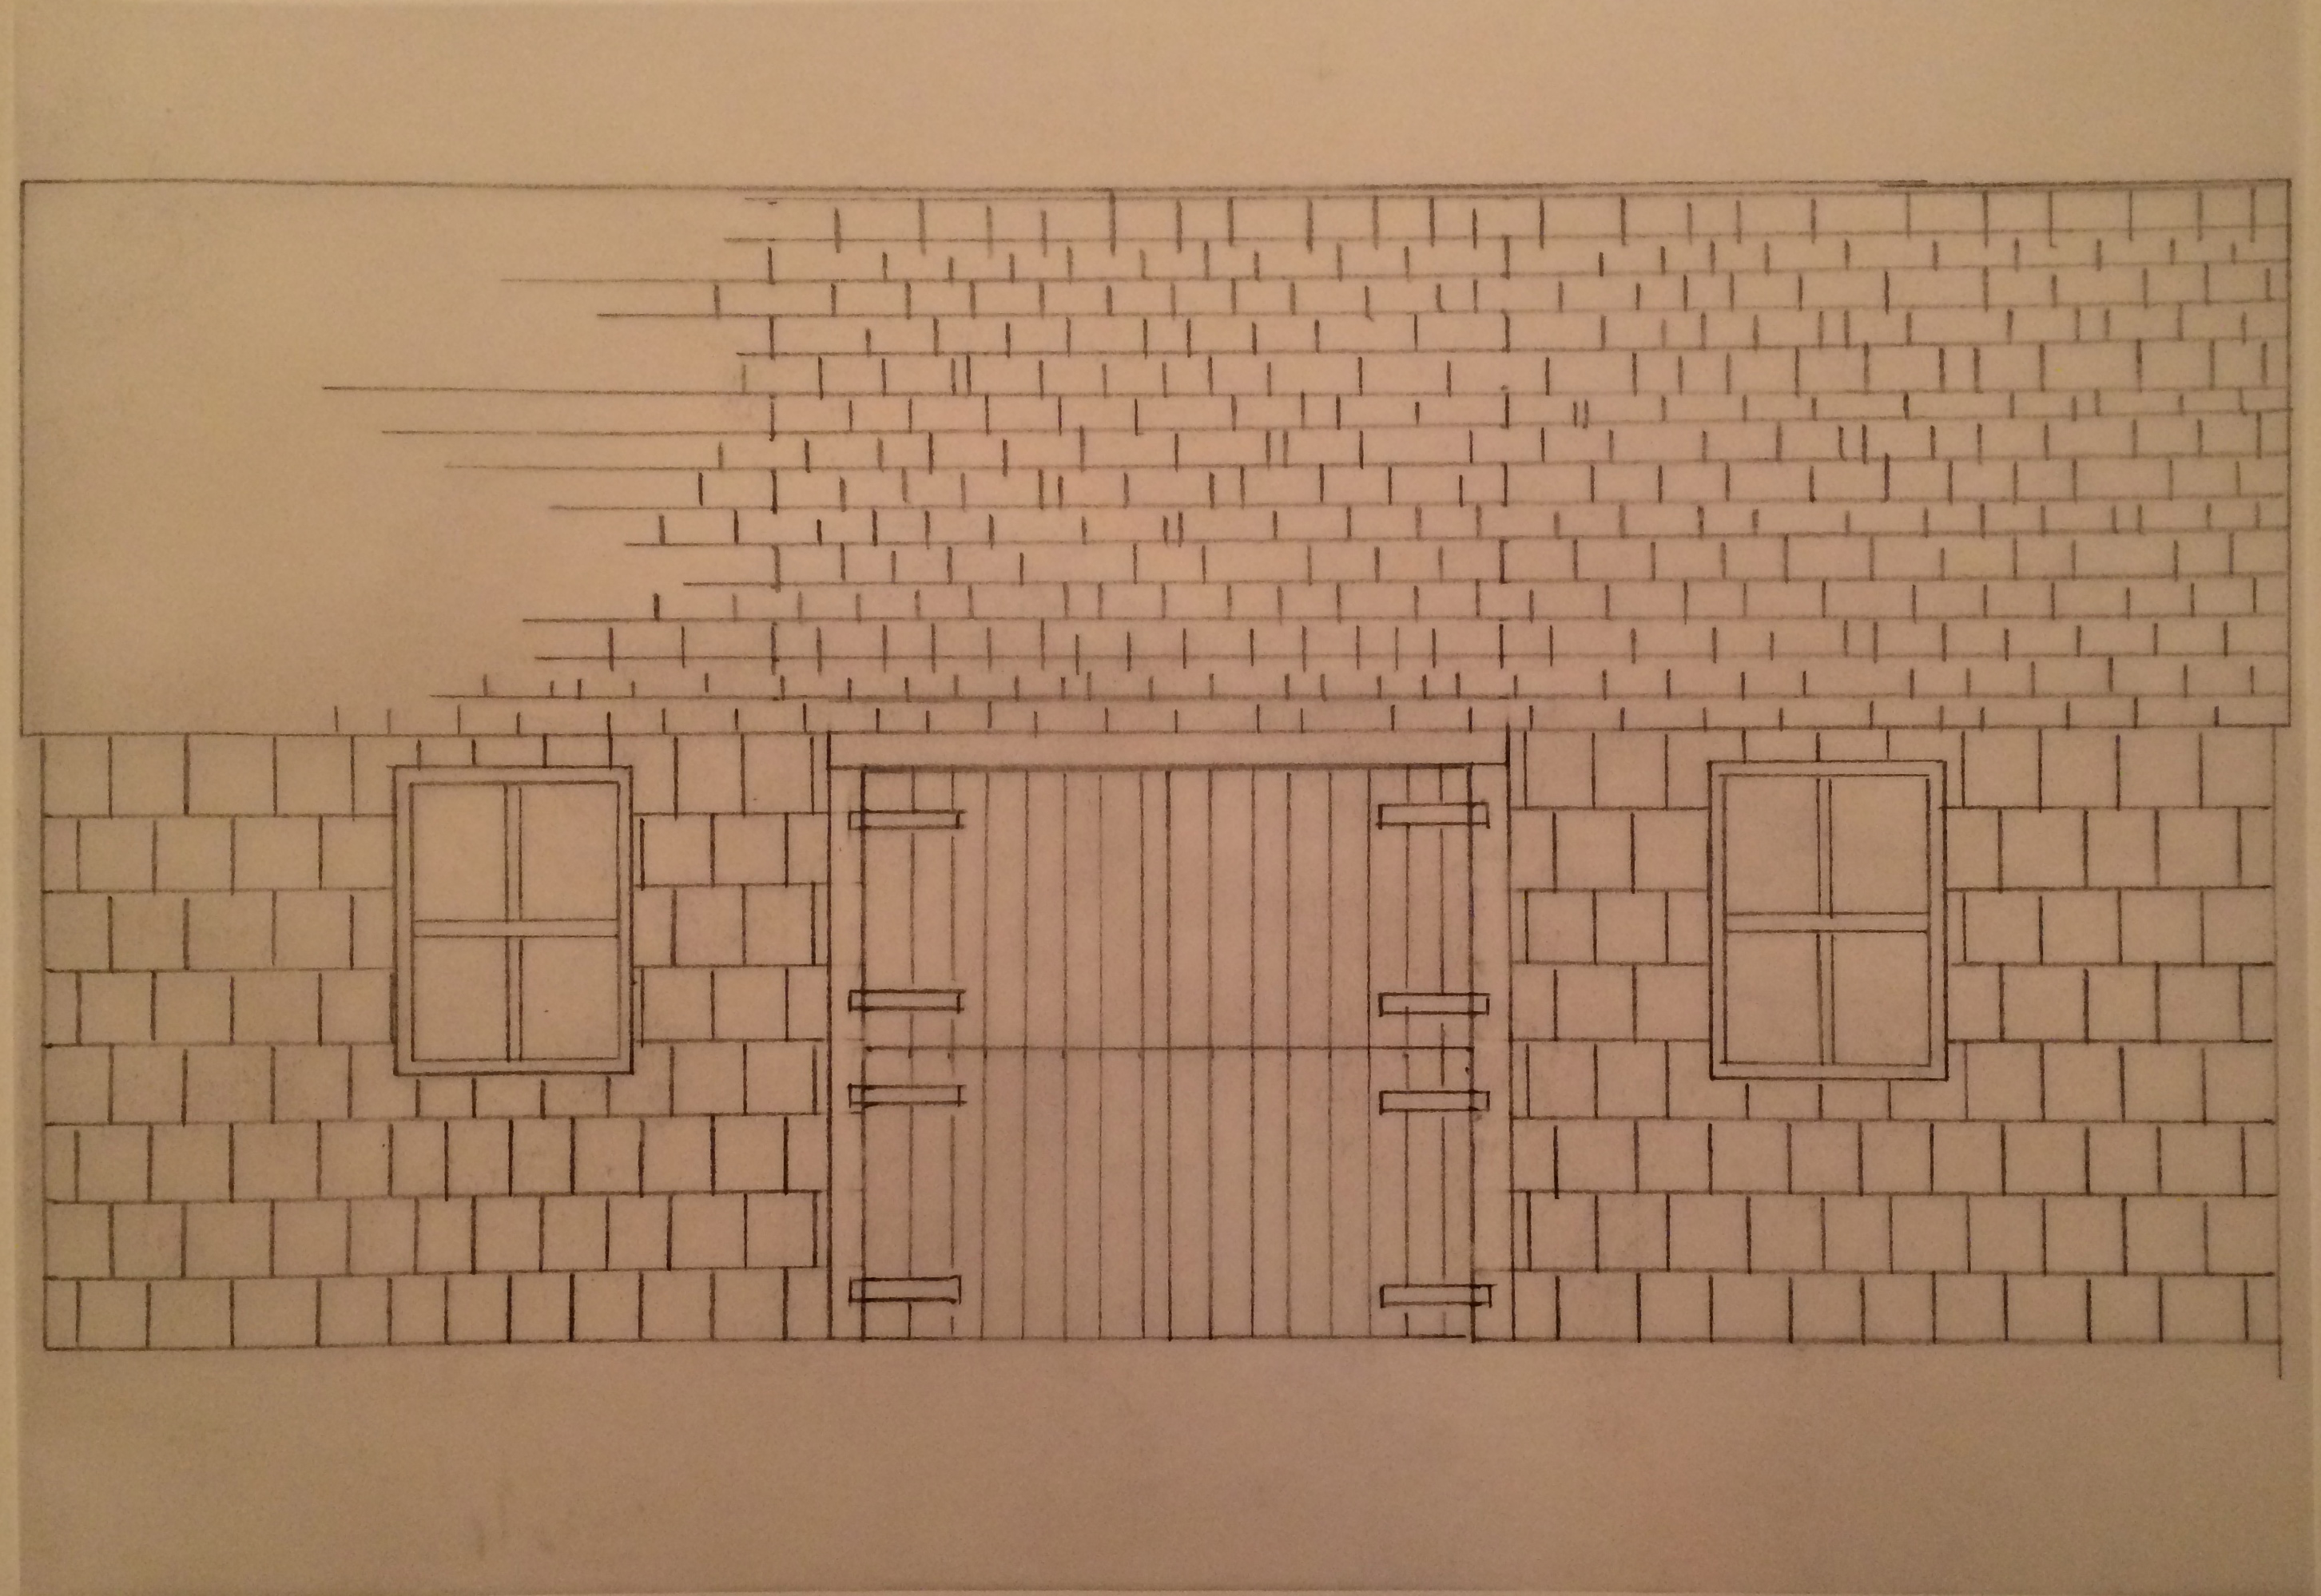 Barn design front view sketch